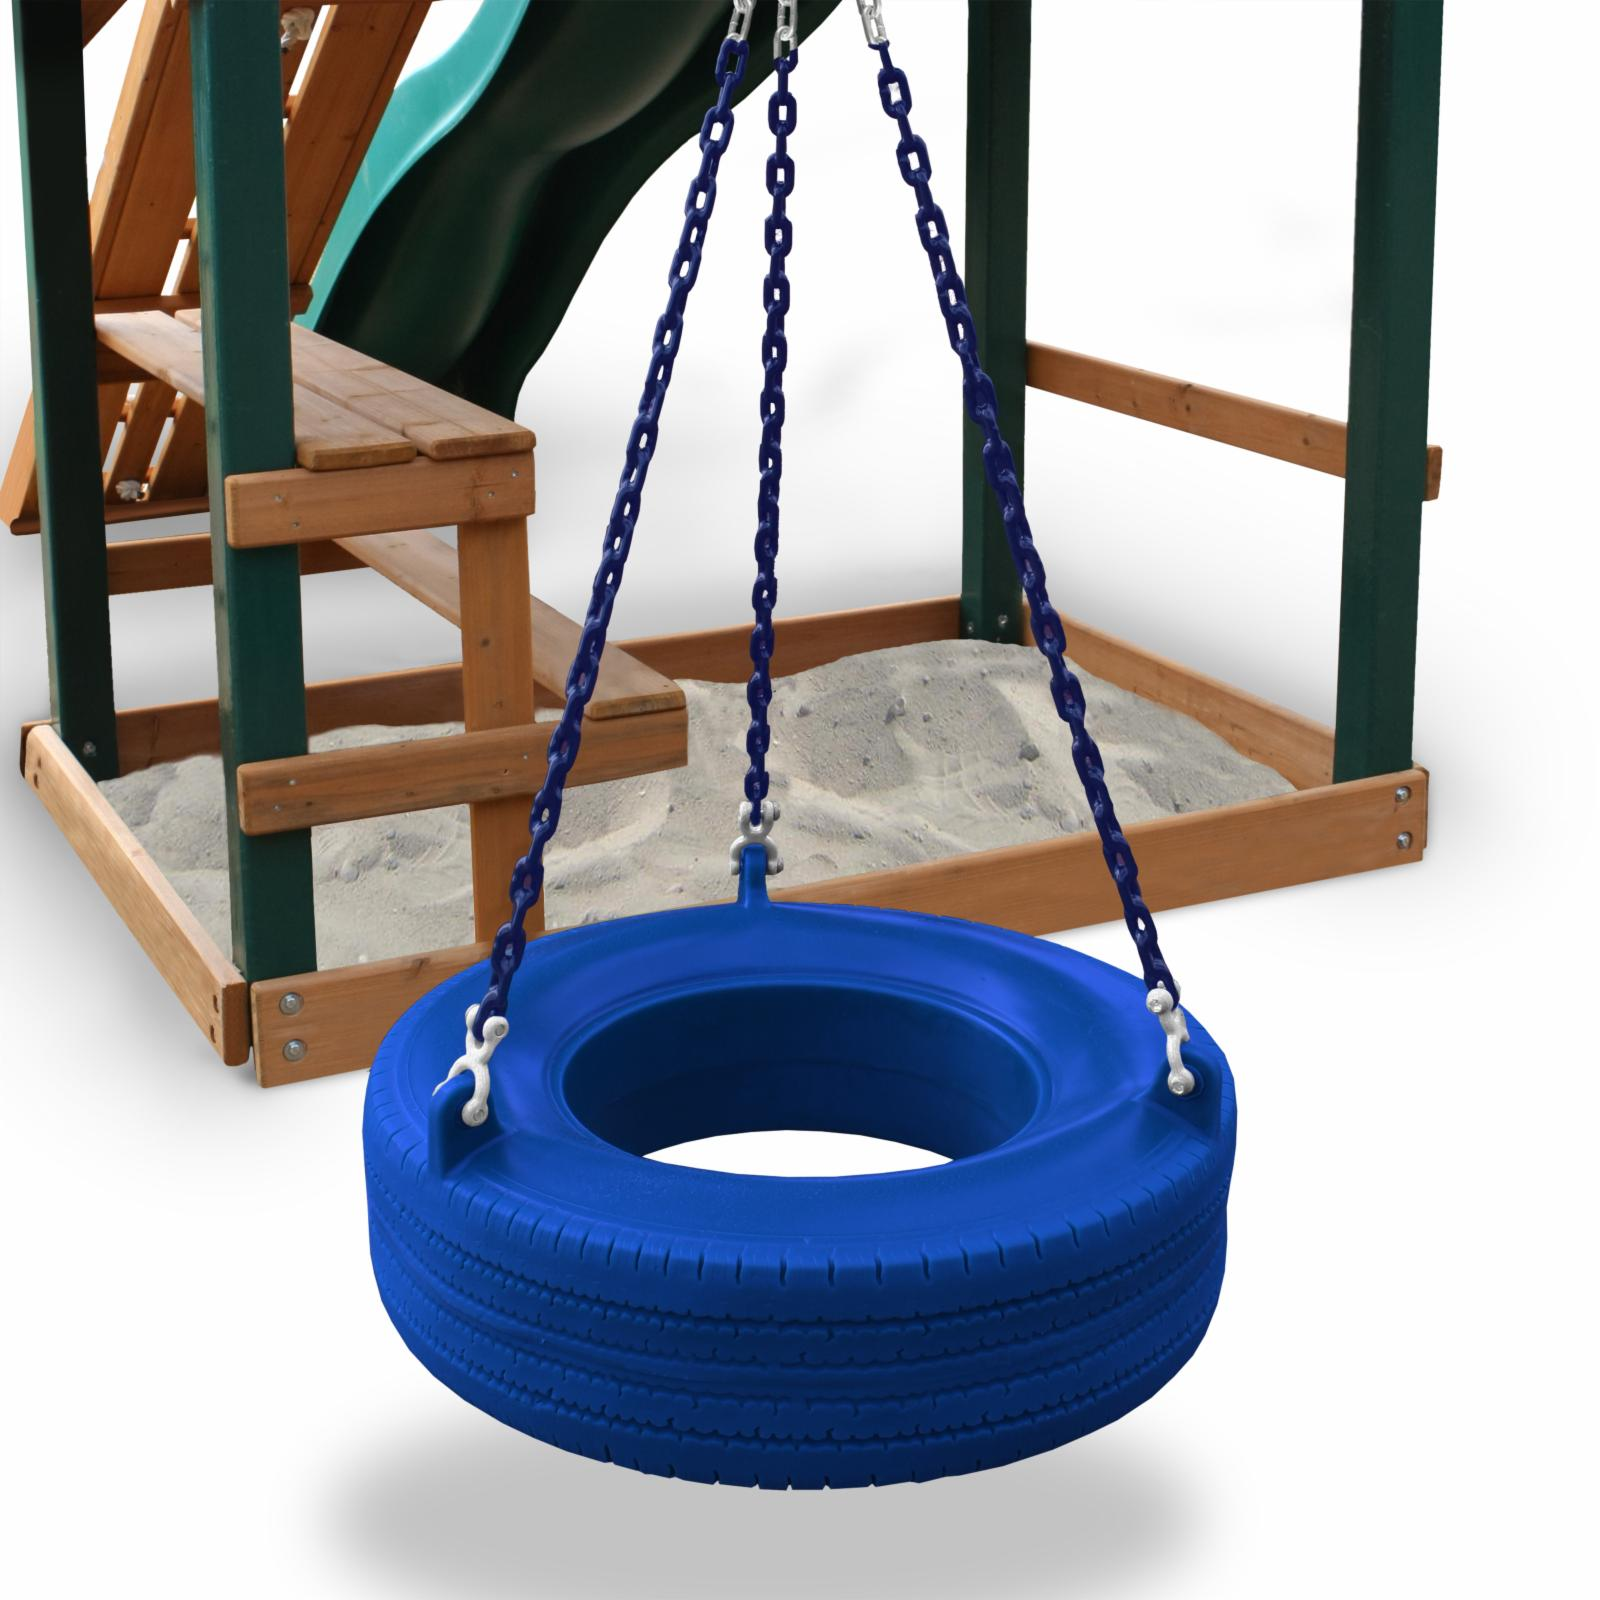 Gorilla Playsets Commercial Grade Tire Swing Green - 04-0...